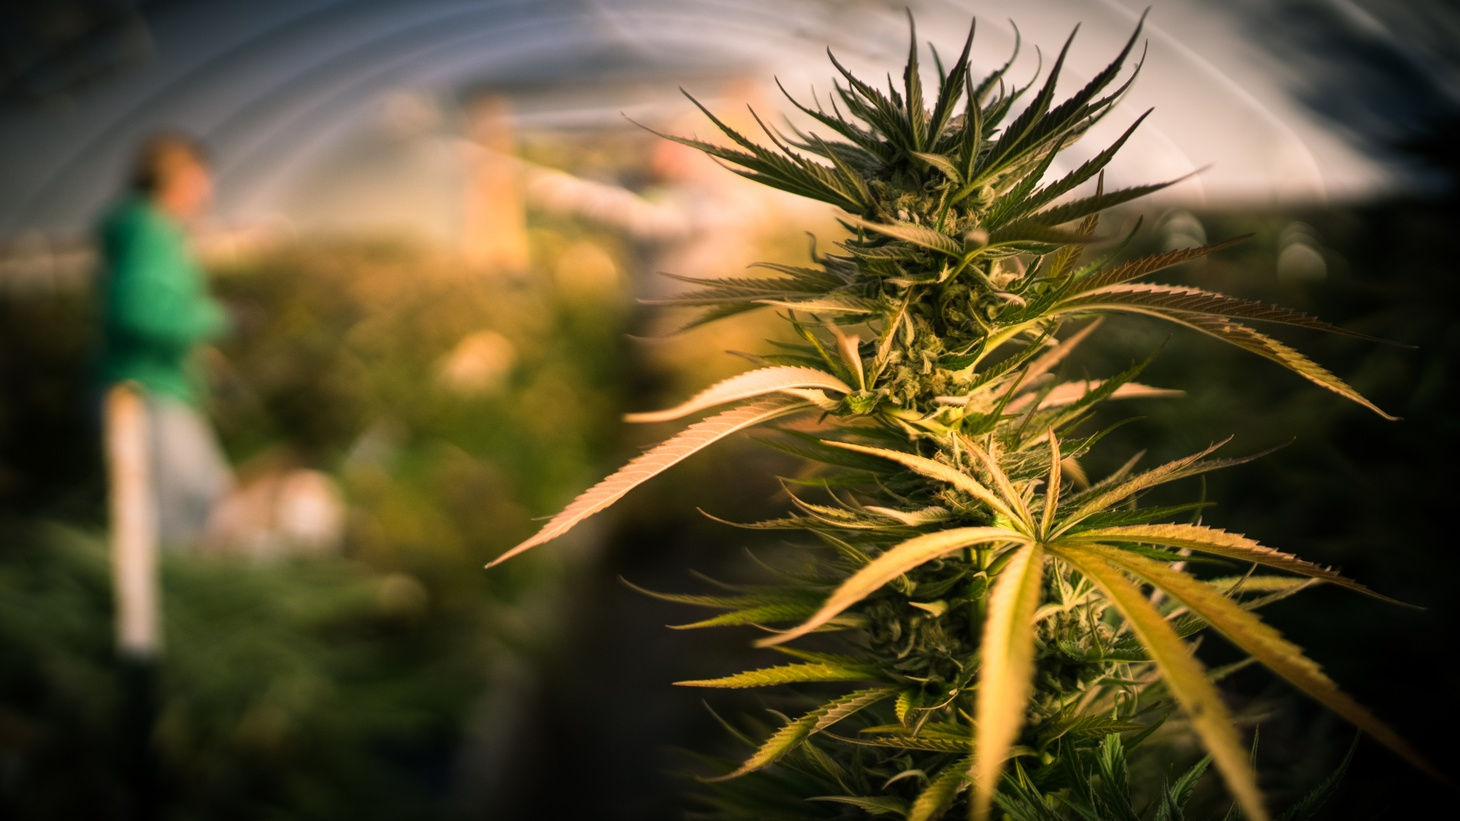 About 82% of California's cannabis businesses are currently operating under temporary licenses, according to Nicole Elliott, the director of the California Department of Cannabis Control.